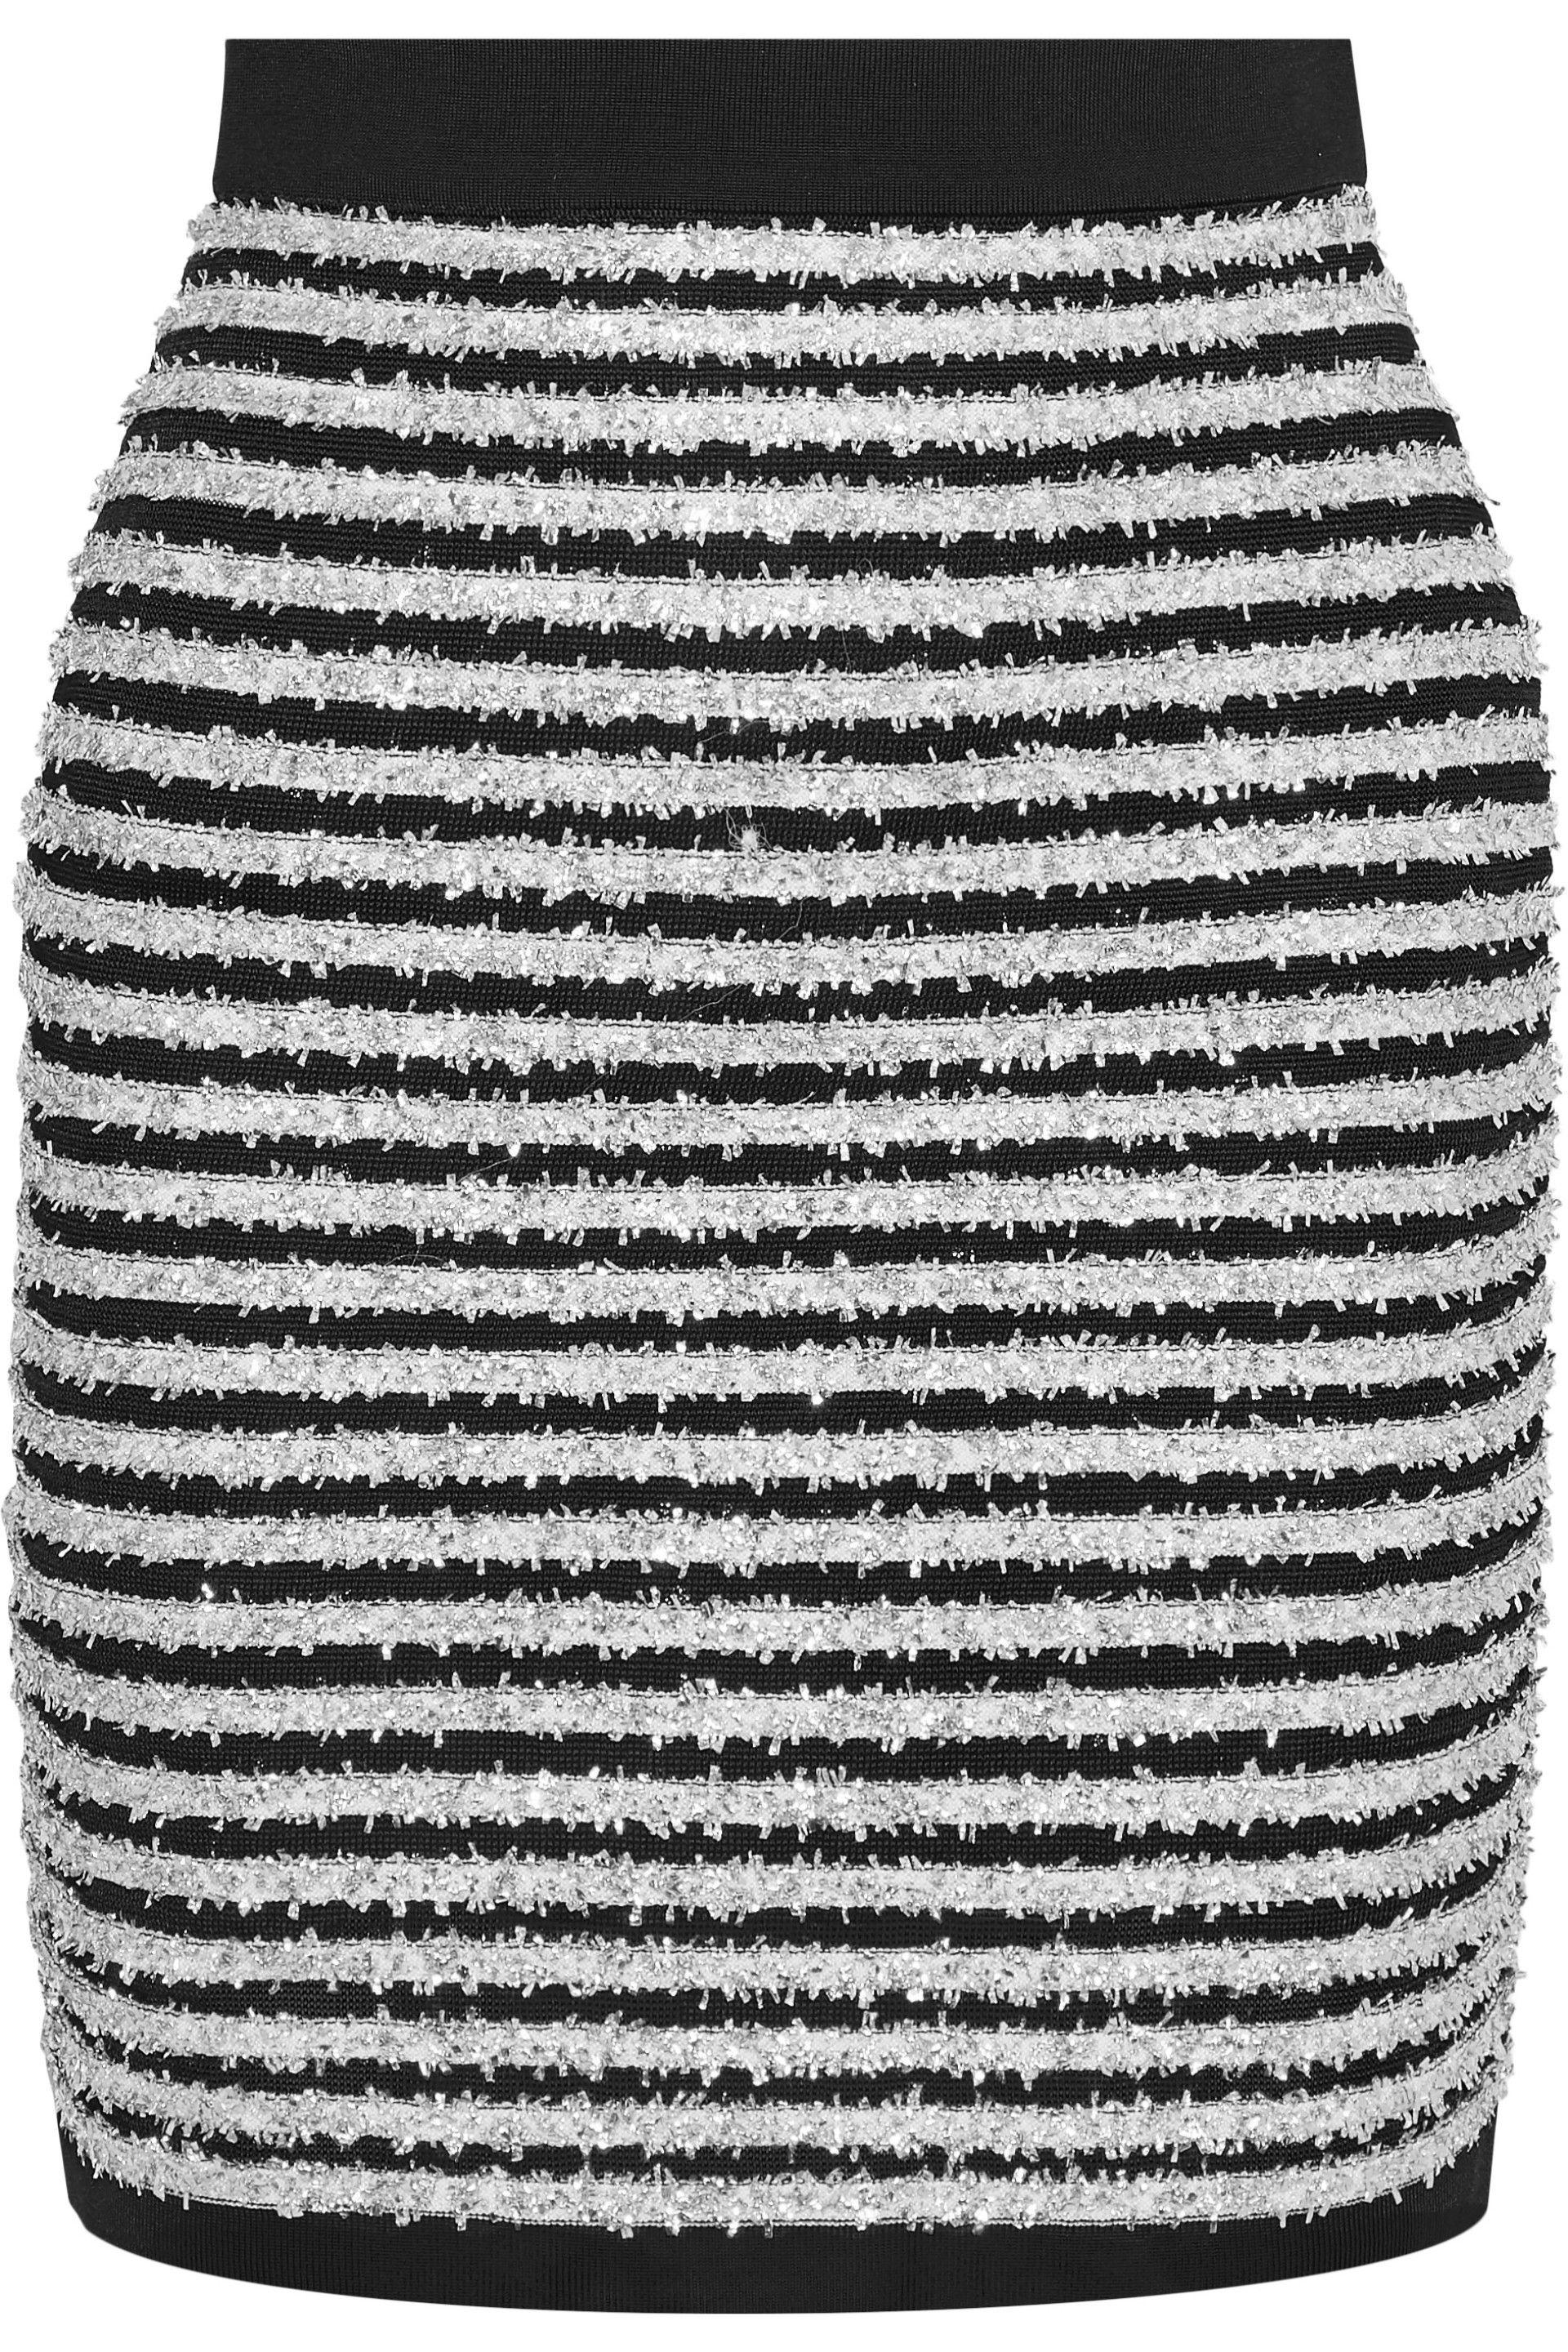 add4615a55 Balmain Woman Striped Tinsel And Stretch-knit Mini Skirt Silver in ...